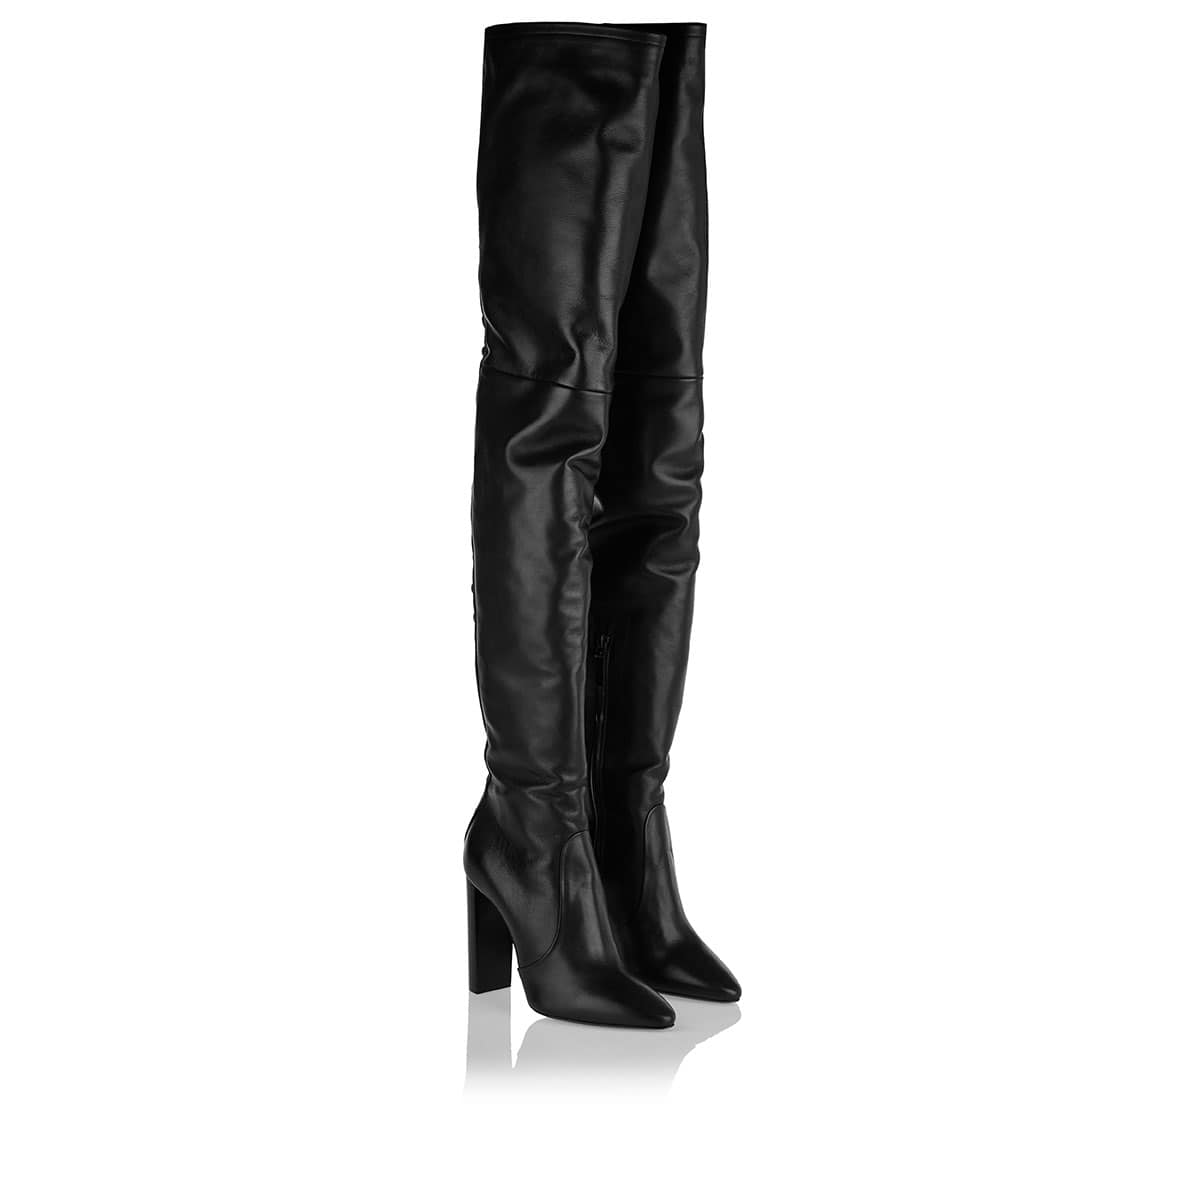 76 thigh-high laced boots